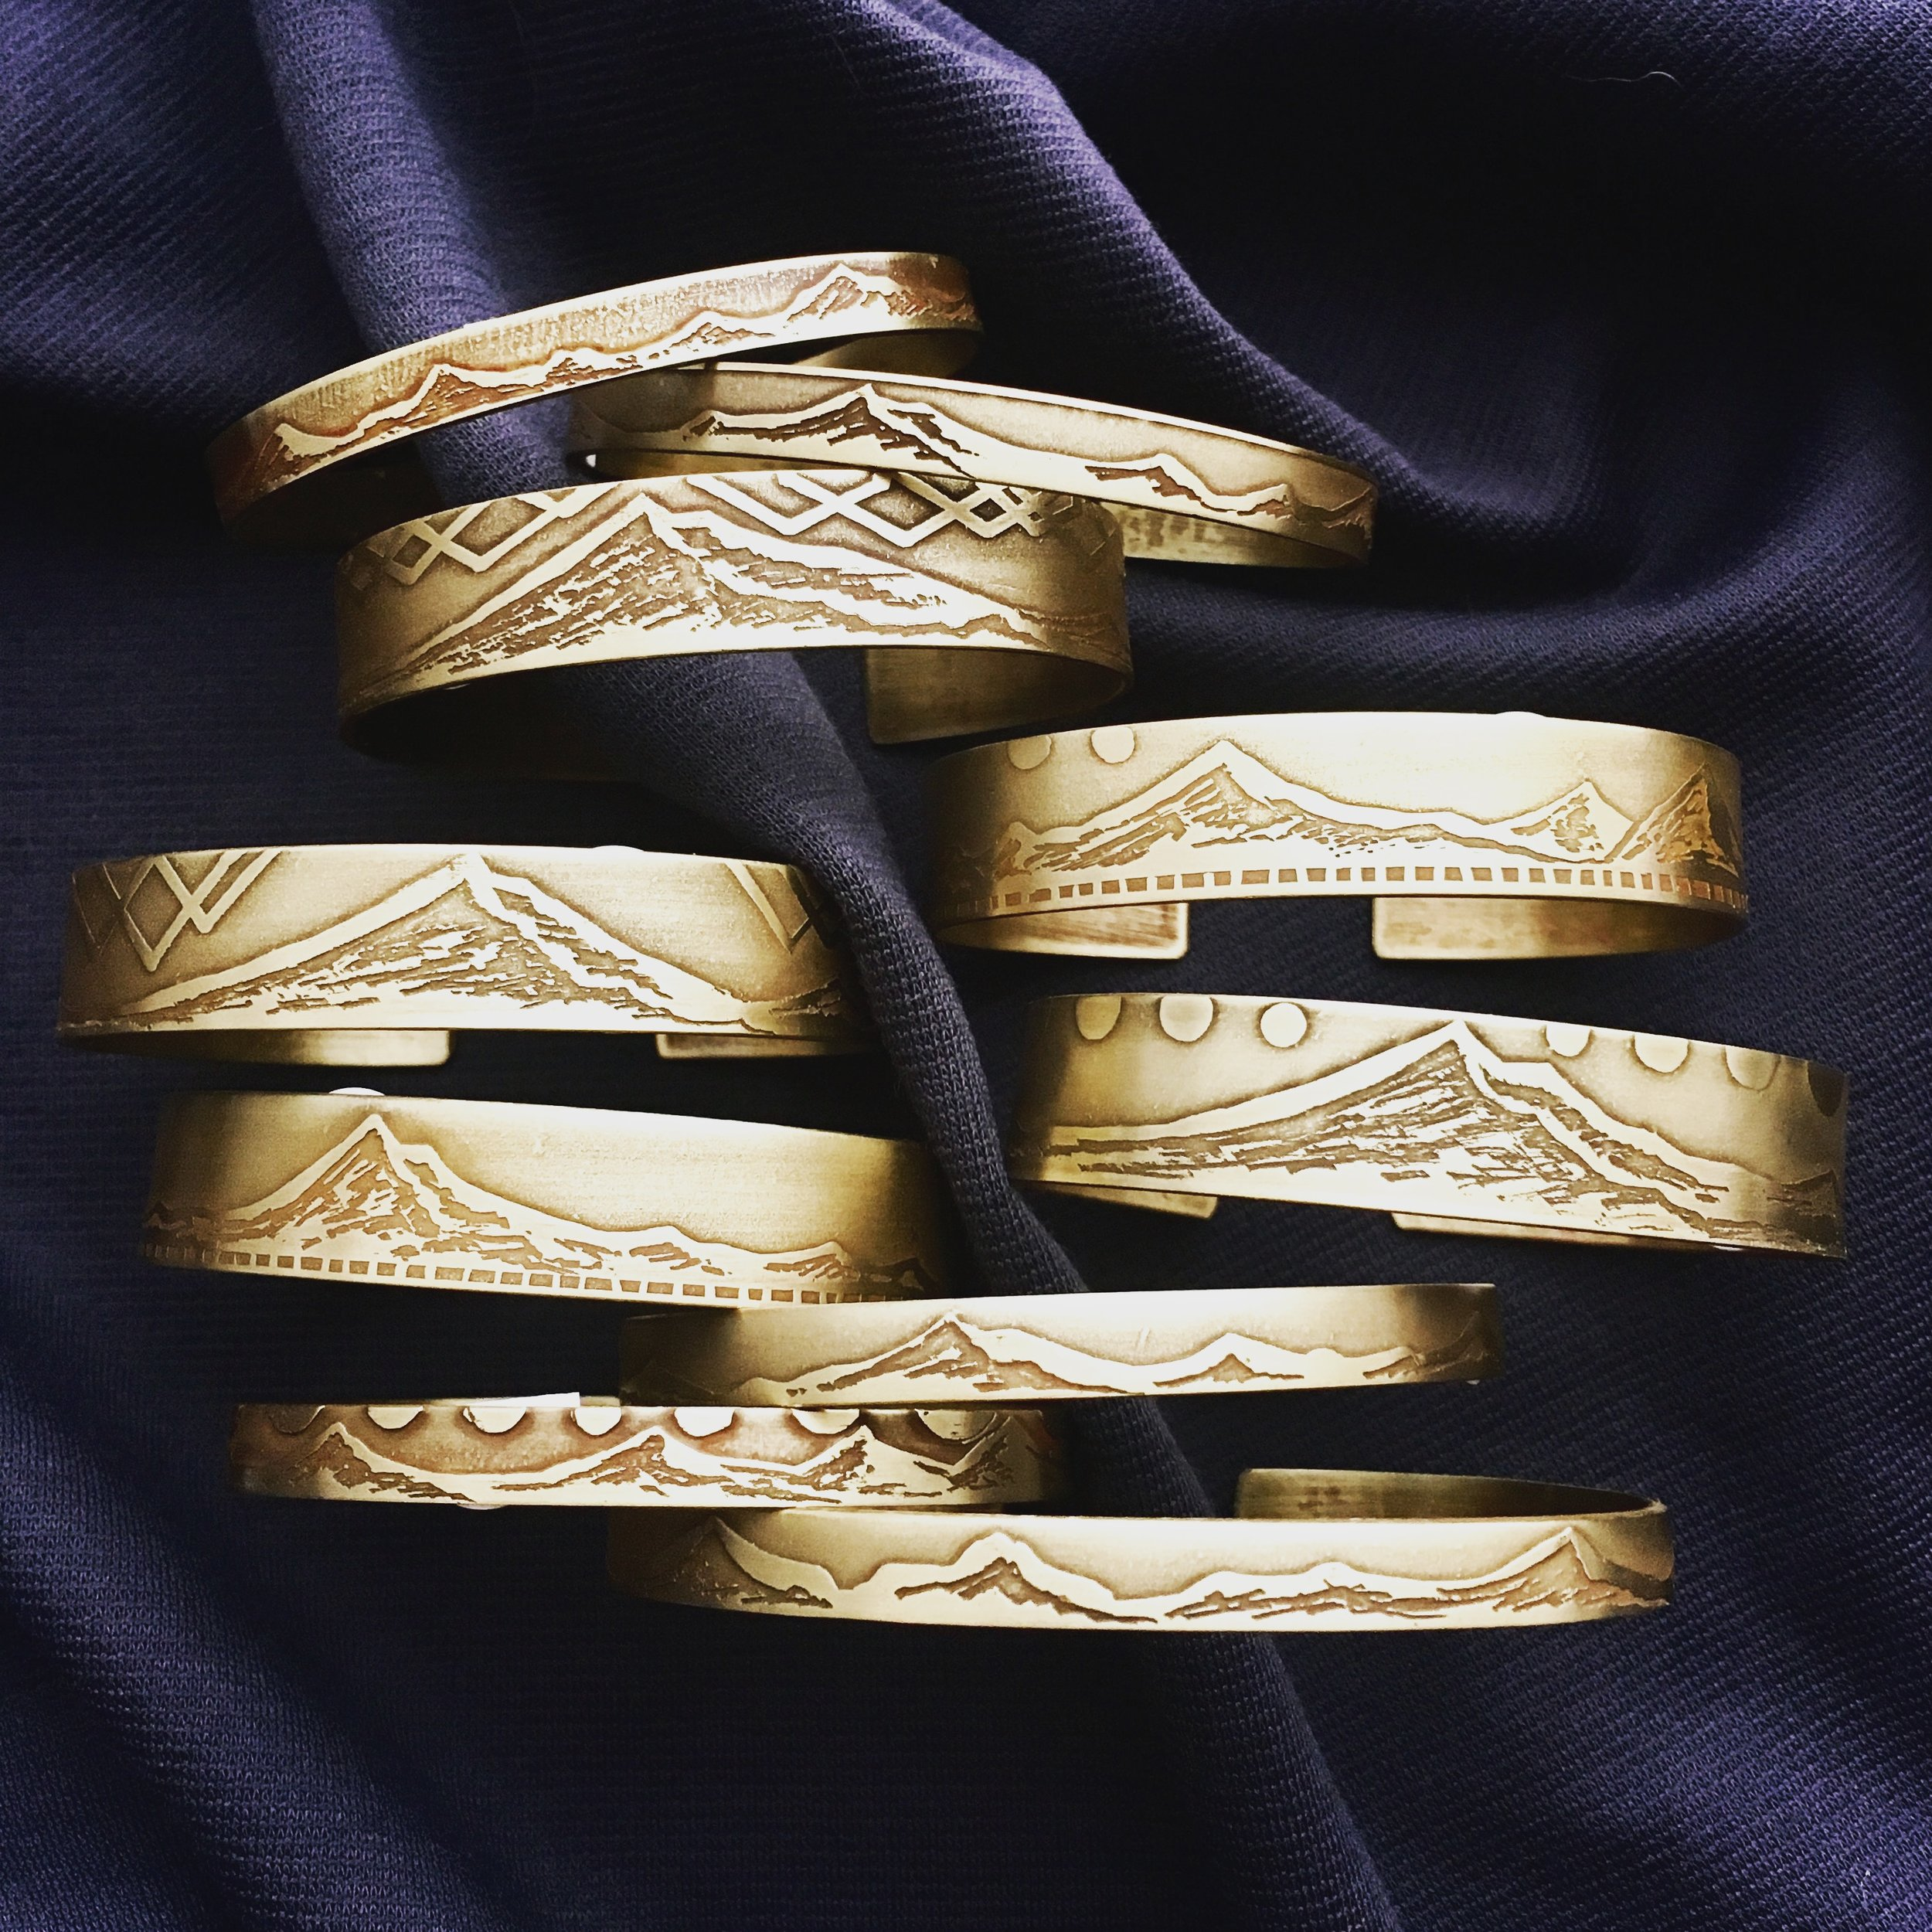 Handcrafted Etched Brass Bracelets